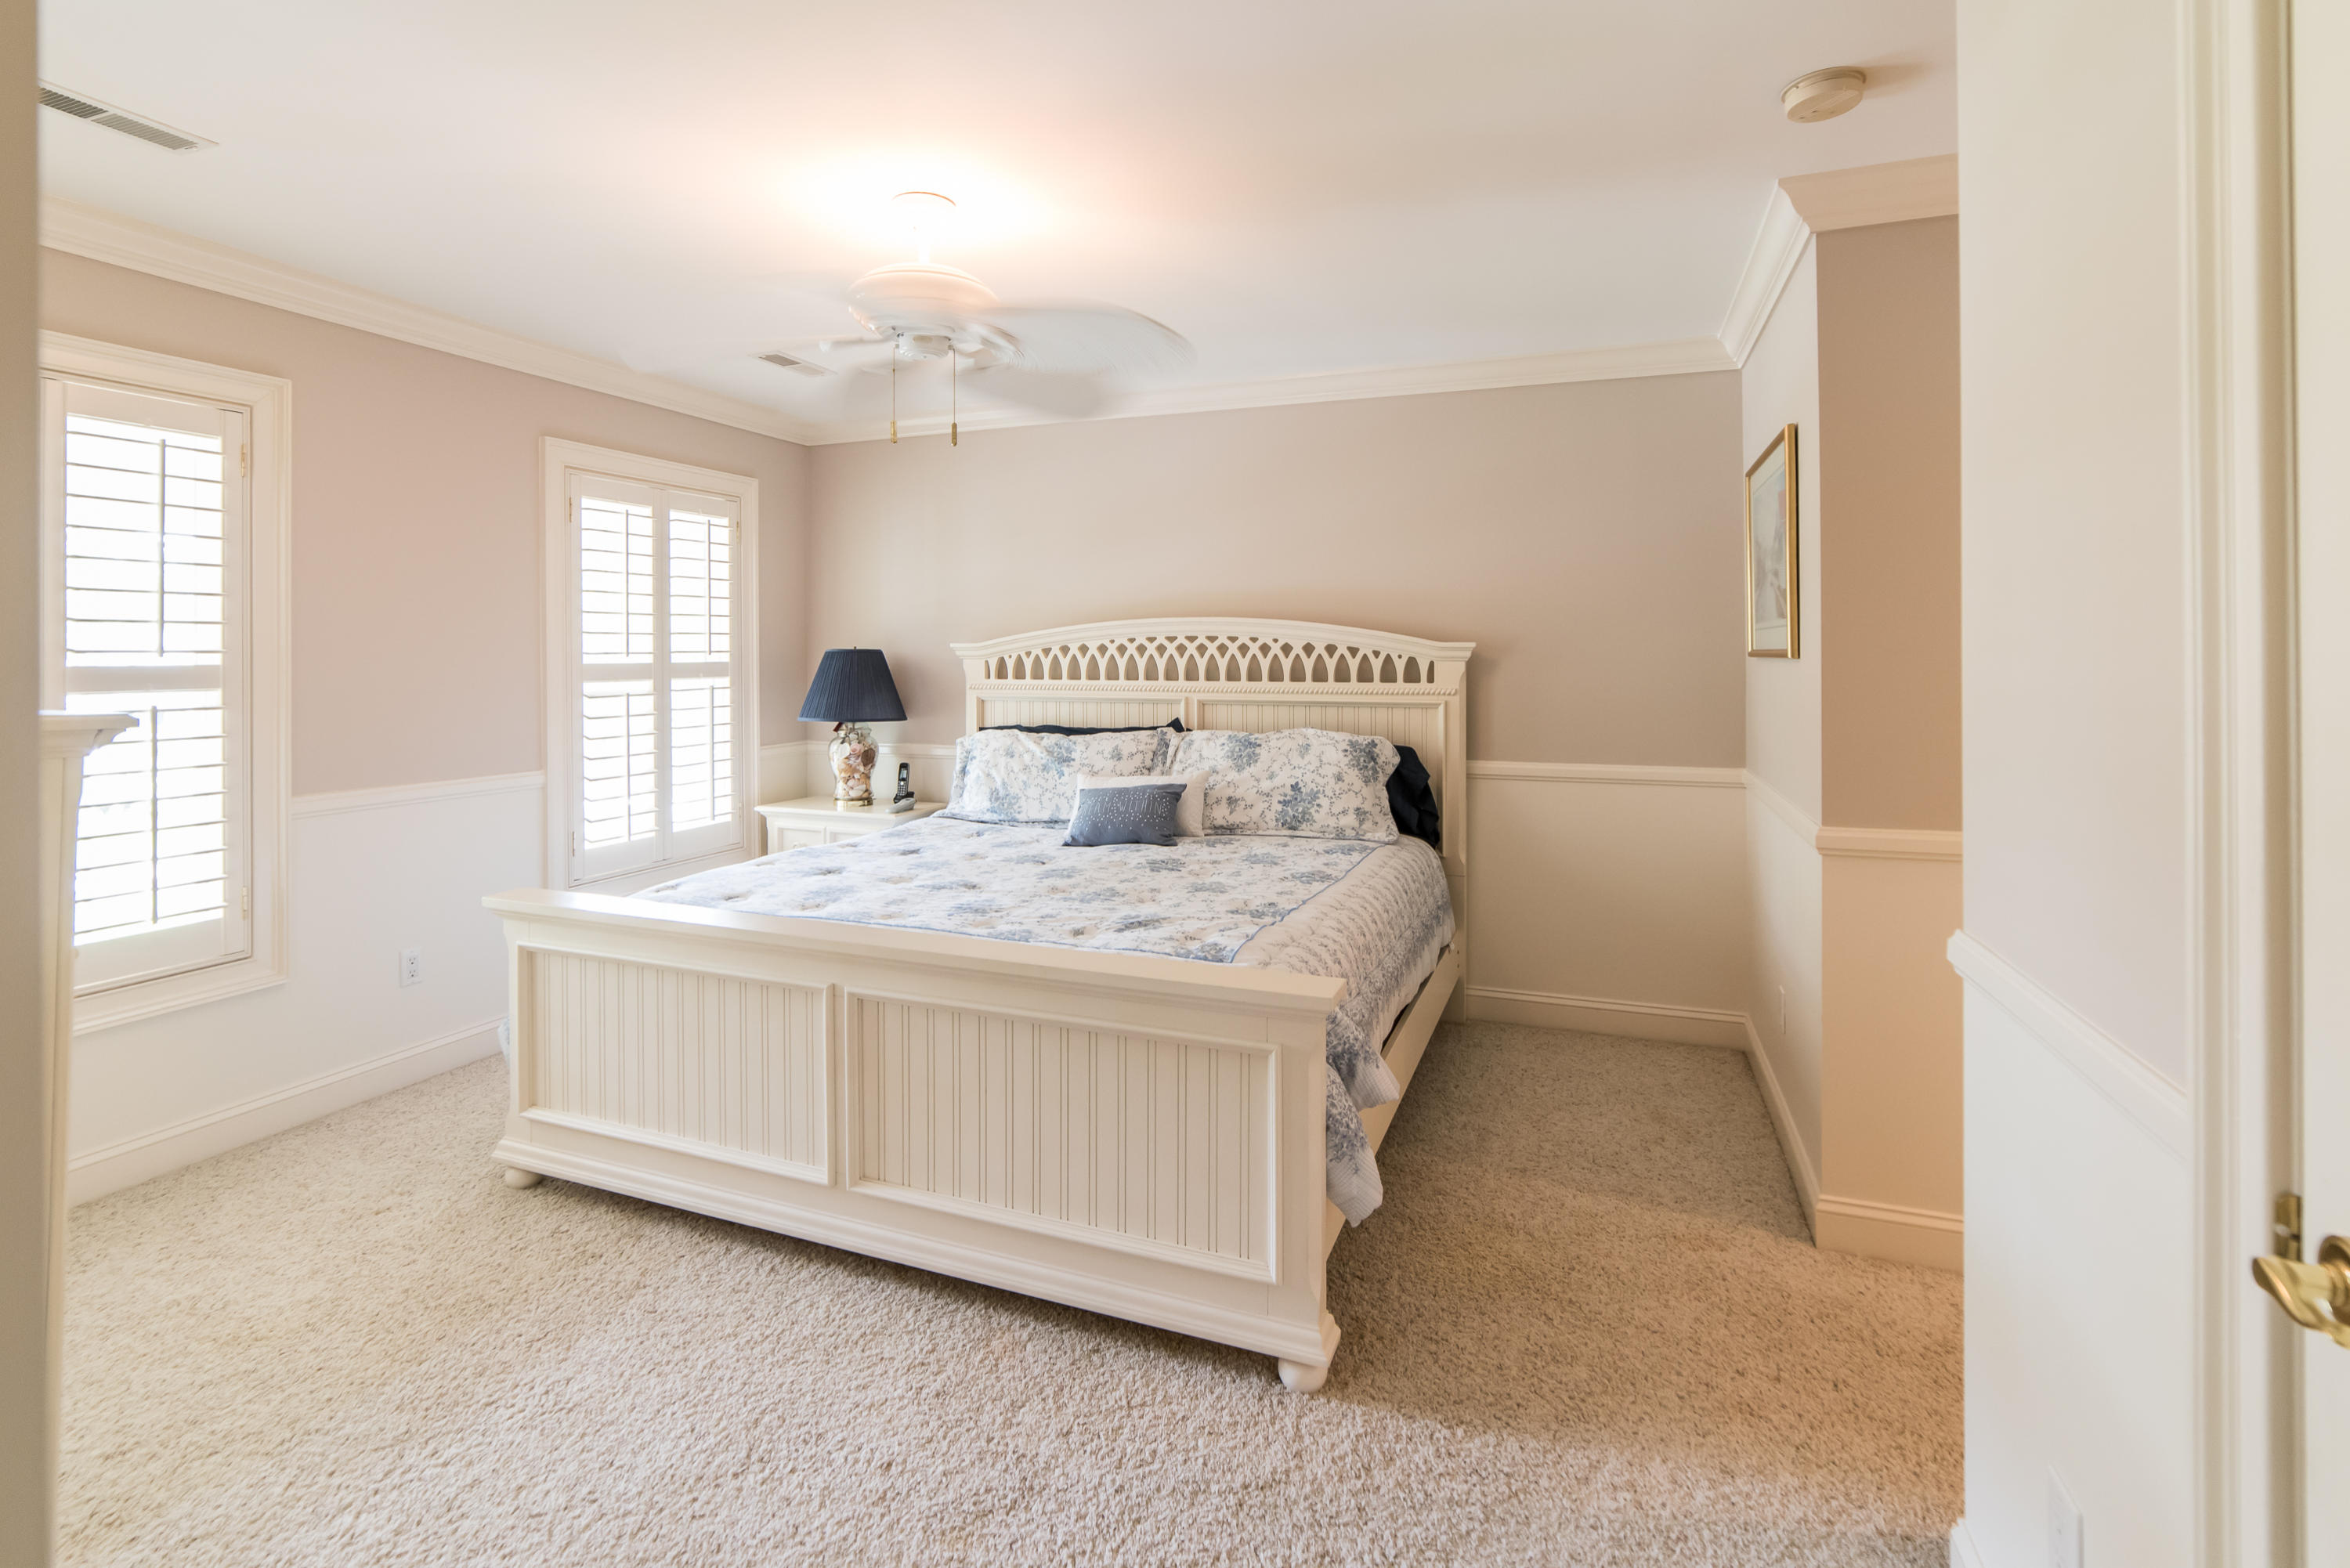 Dunes West Homes For Sale - 1816 Shell Ring Circle, Mount Pleasant, SC - 28